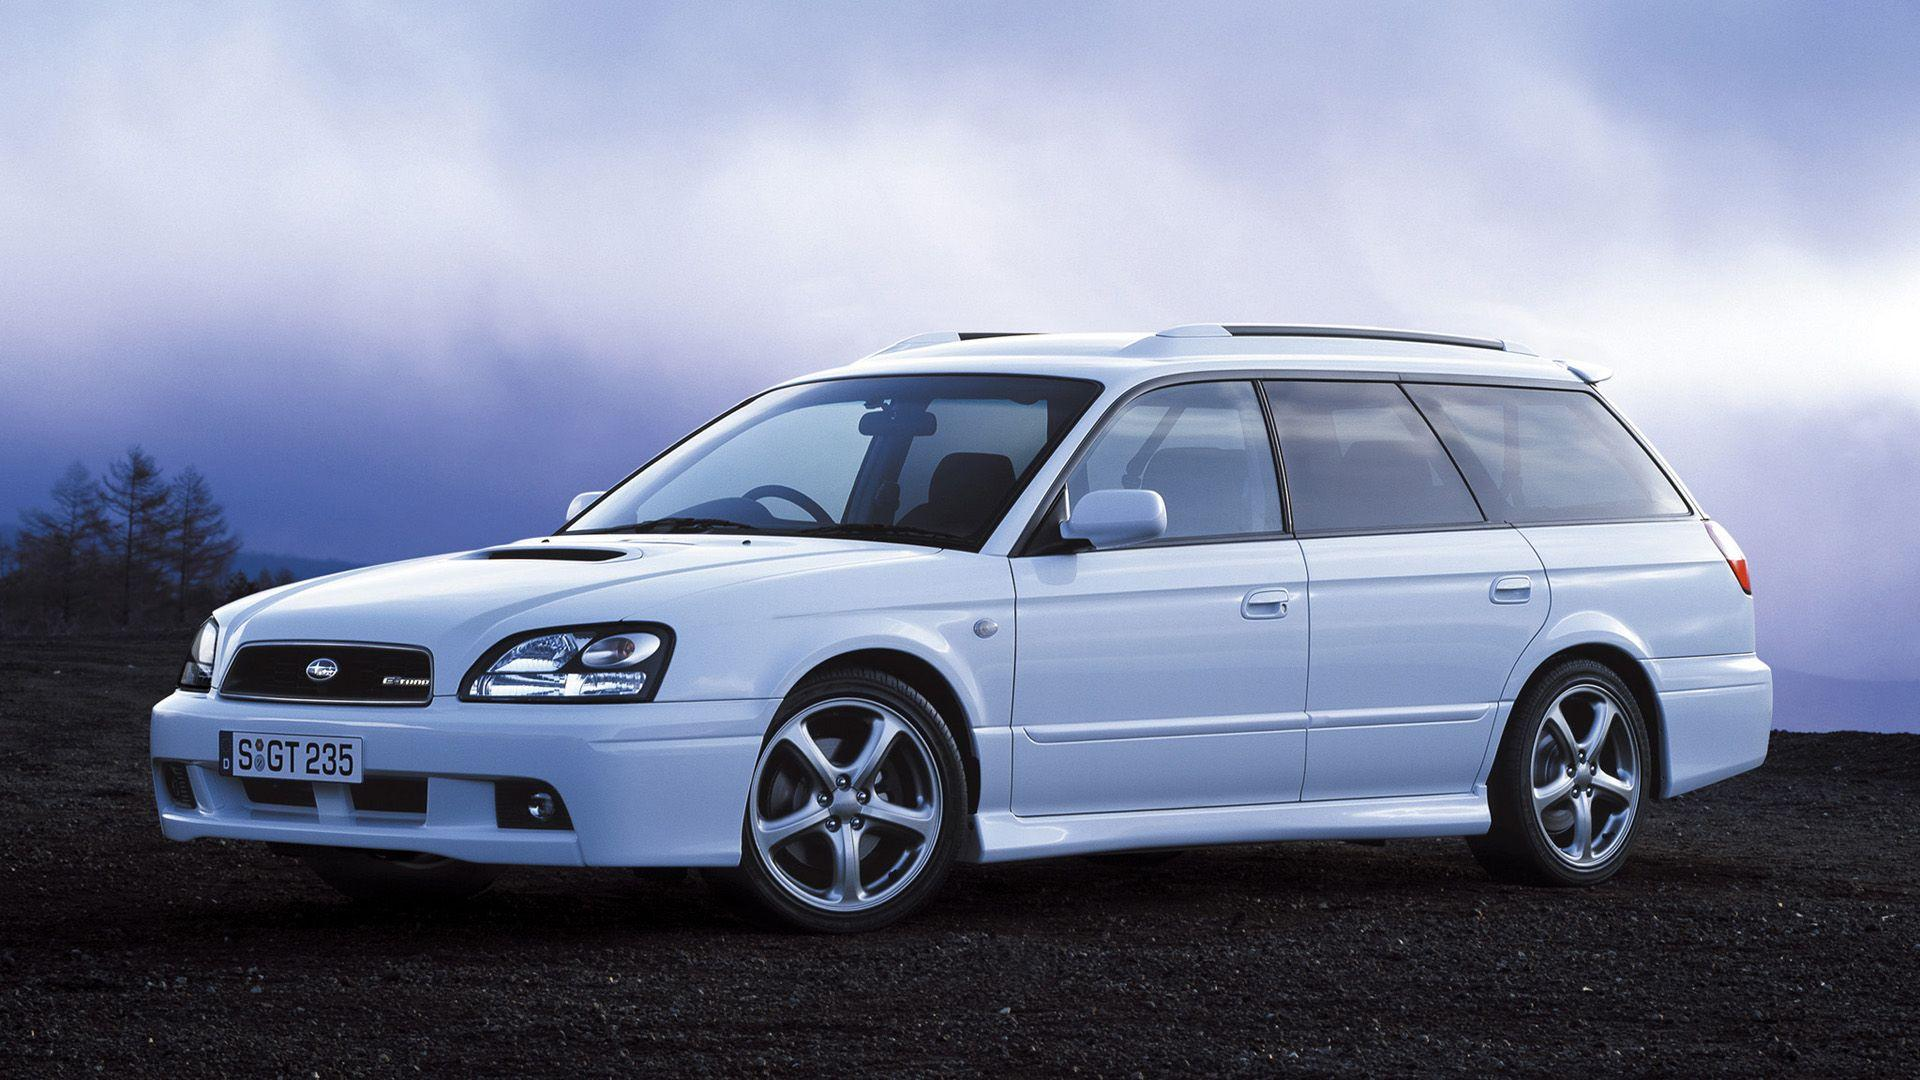 2002 Subaru Legacy GT-B Touring Wallpapers & HD Images - WSupercars